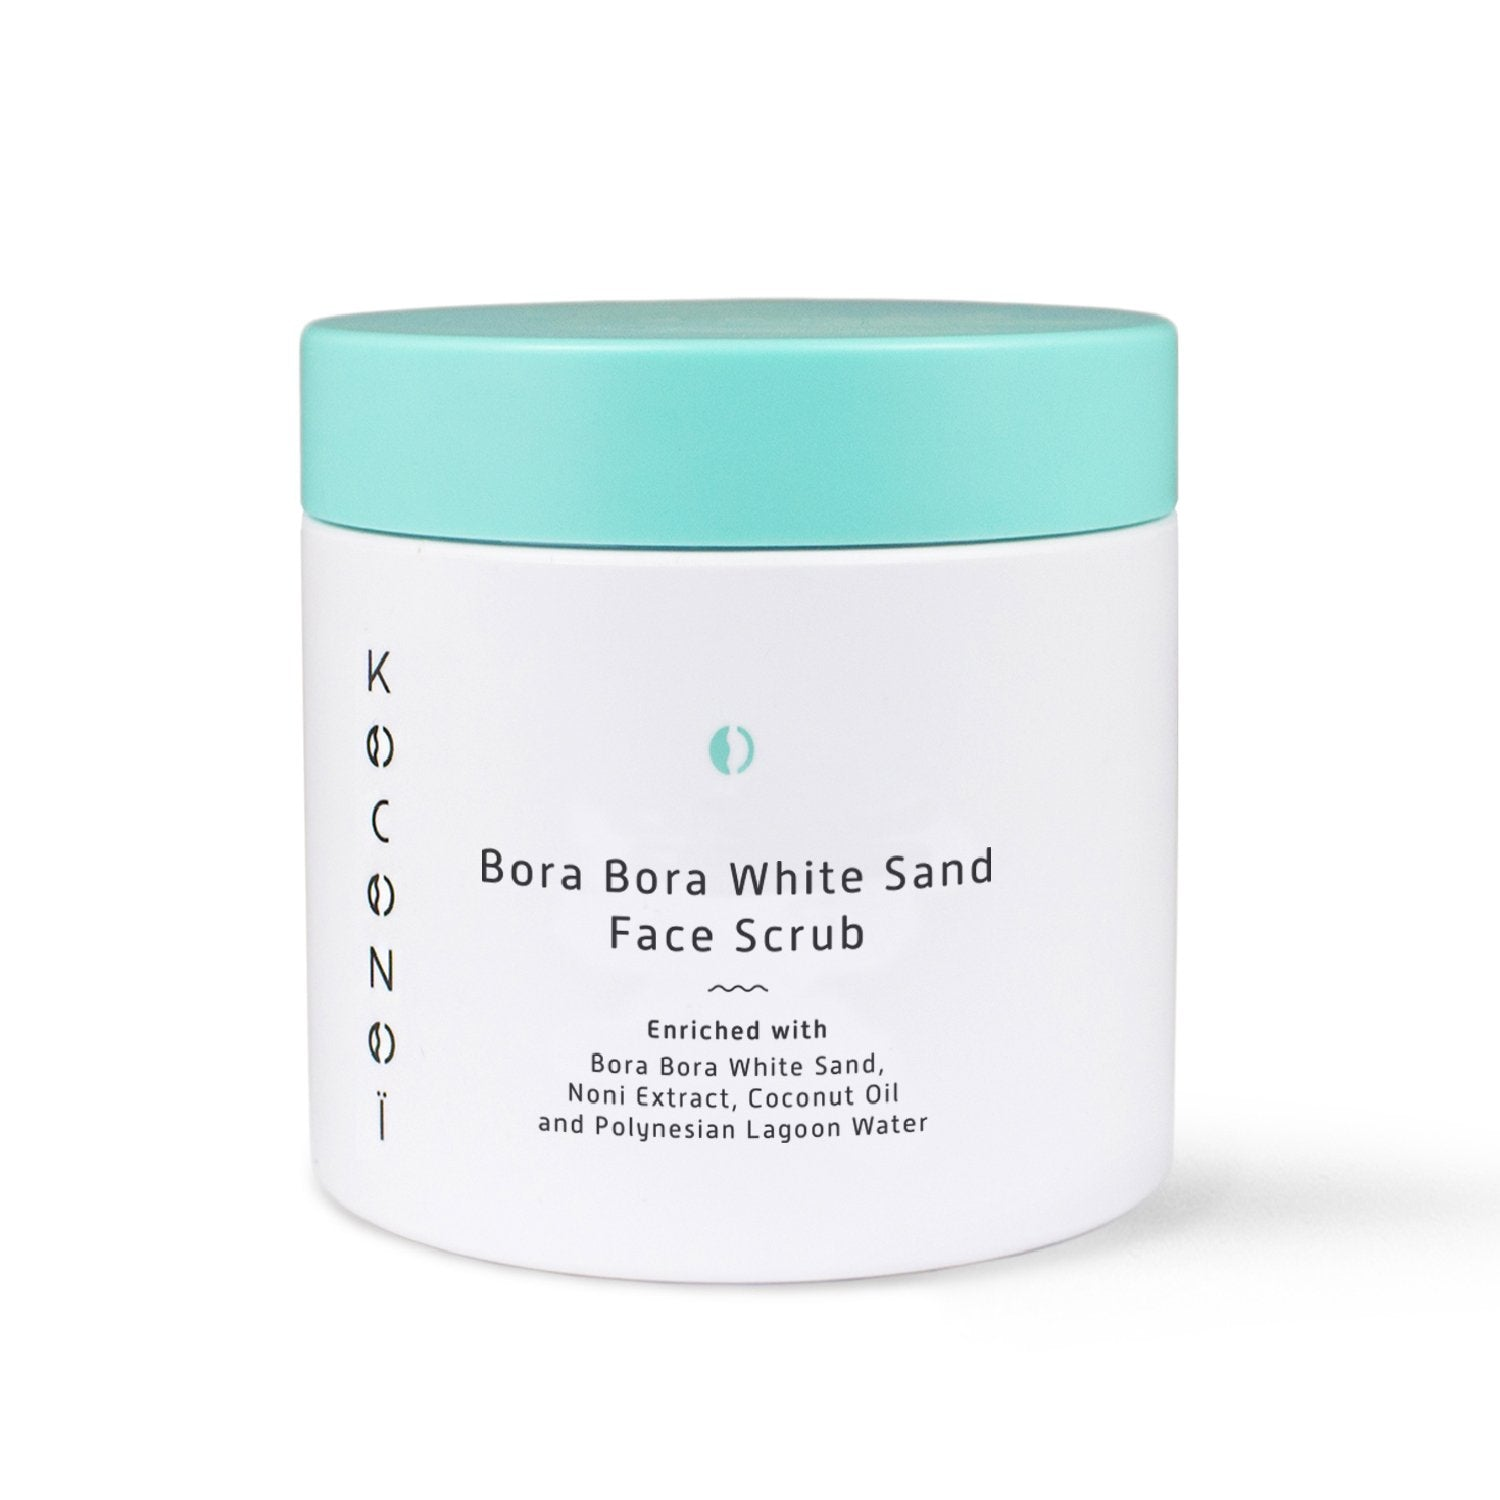 Bora Bora White Sand Face Scrub (100ml)